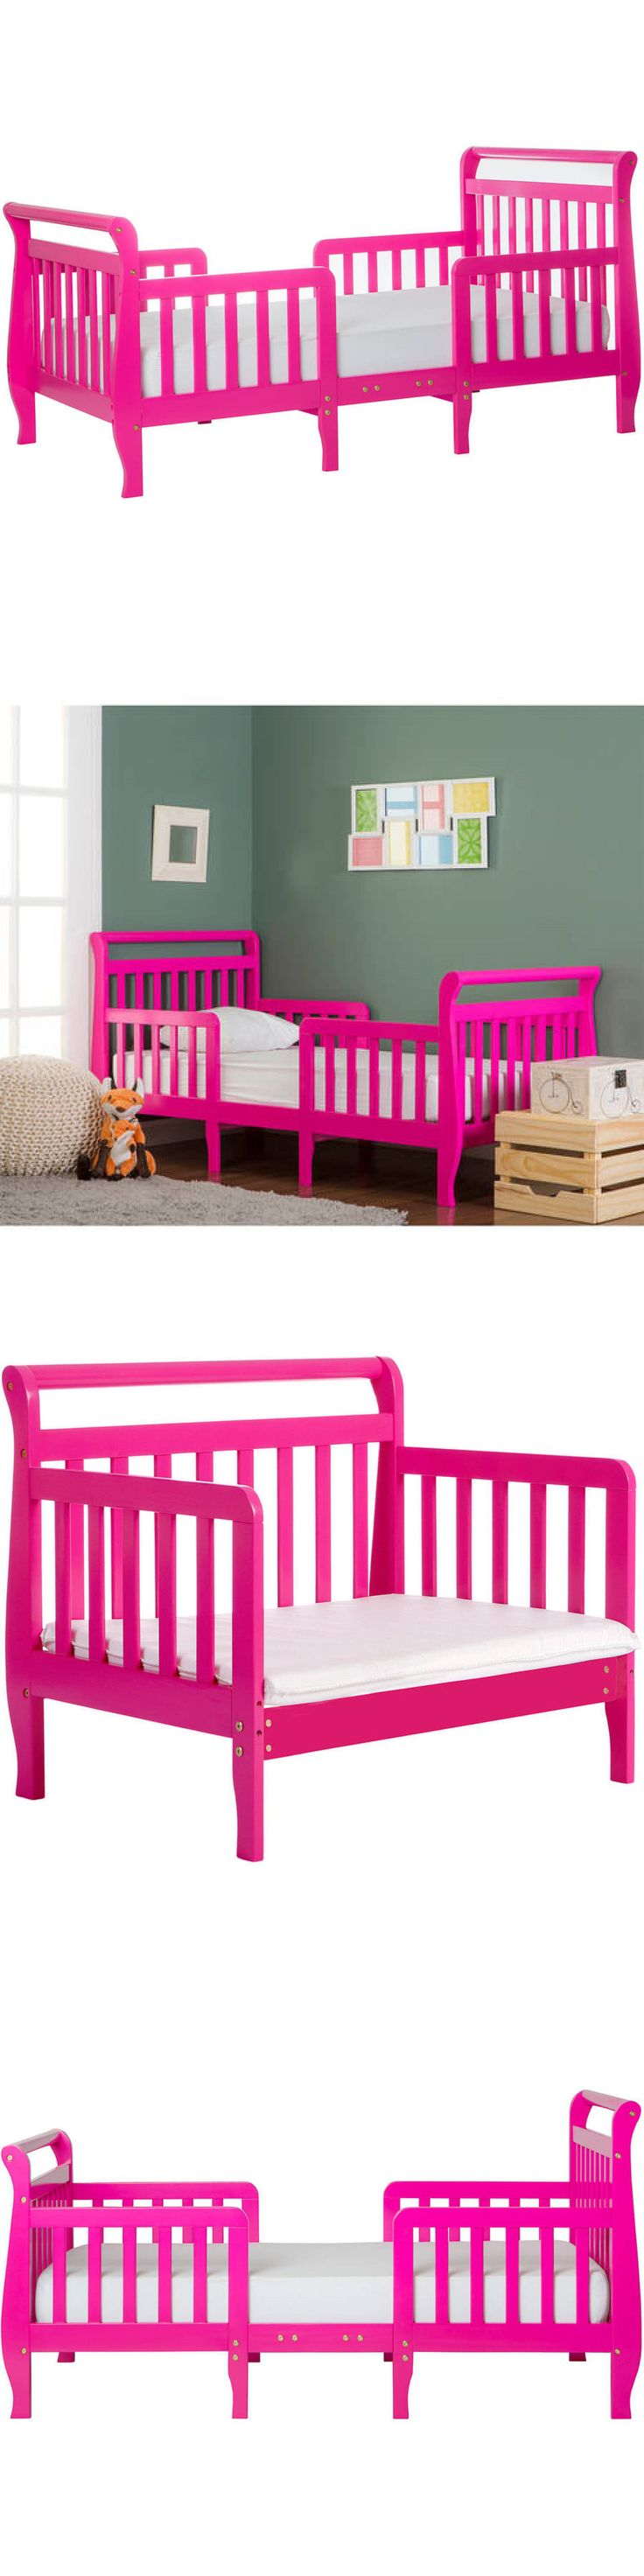 Used crib for sale ebay - Kids At Home Convertible Toddler Bed 3 In 1 Baby Crib With Safety